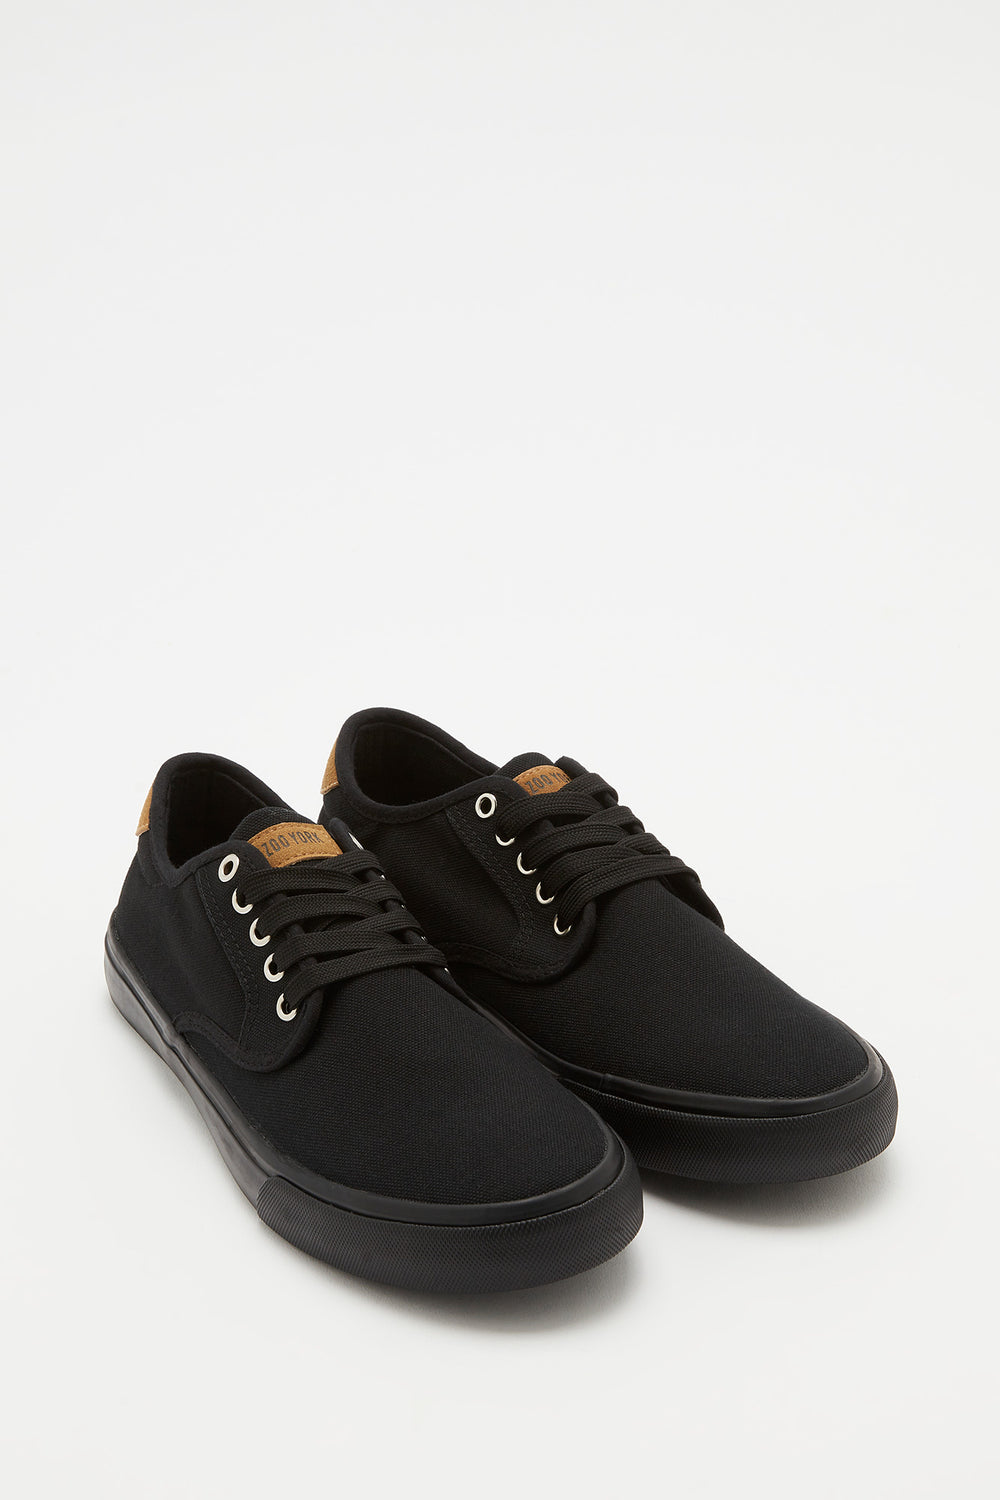 Zoo York Mens Canvas Skate Shoes Black